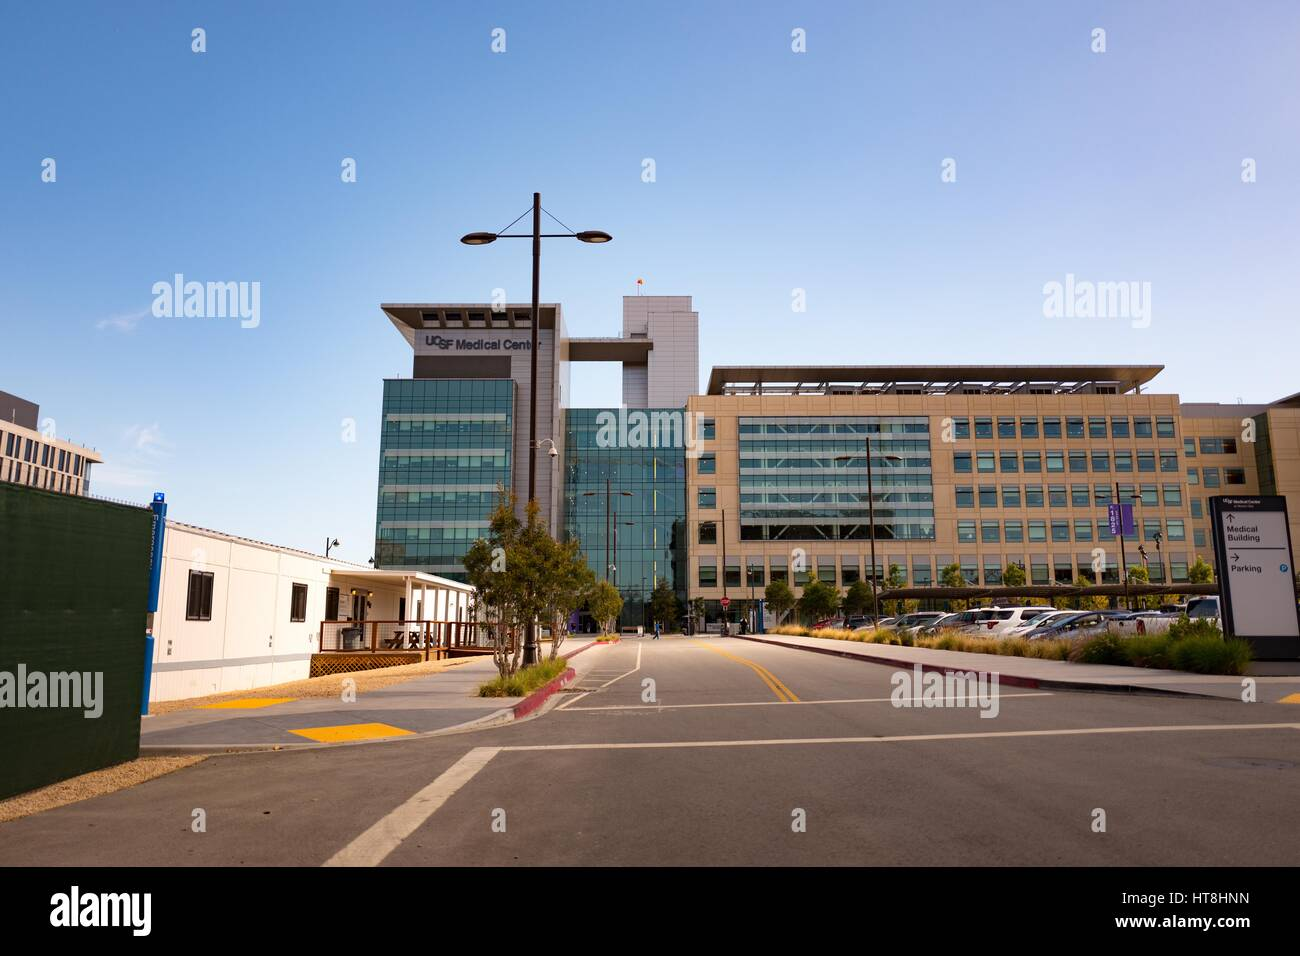 Ucsf Stock Photos & Ucsf Stock Images - Page 2 - Alamy